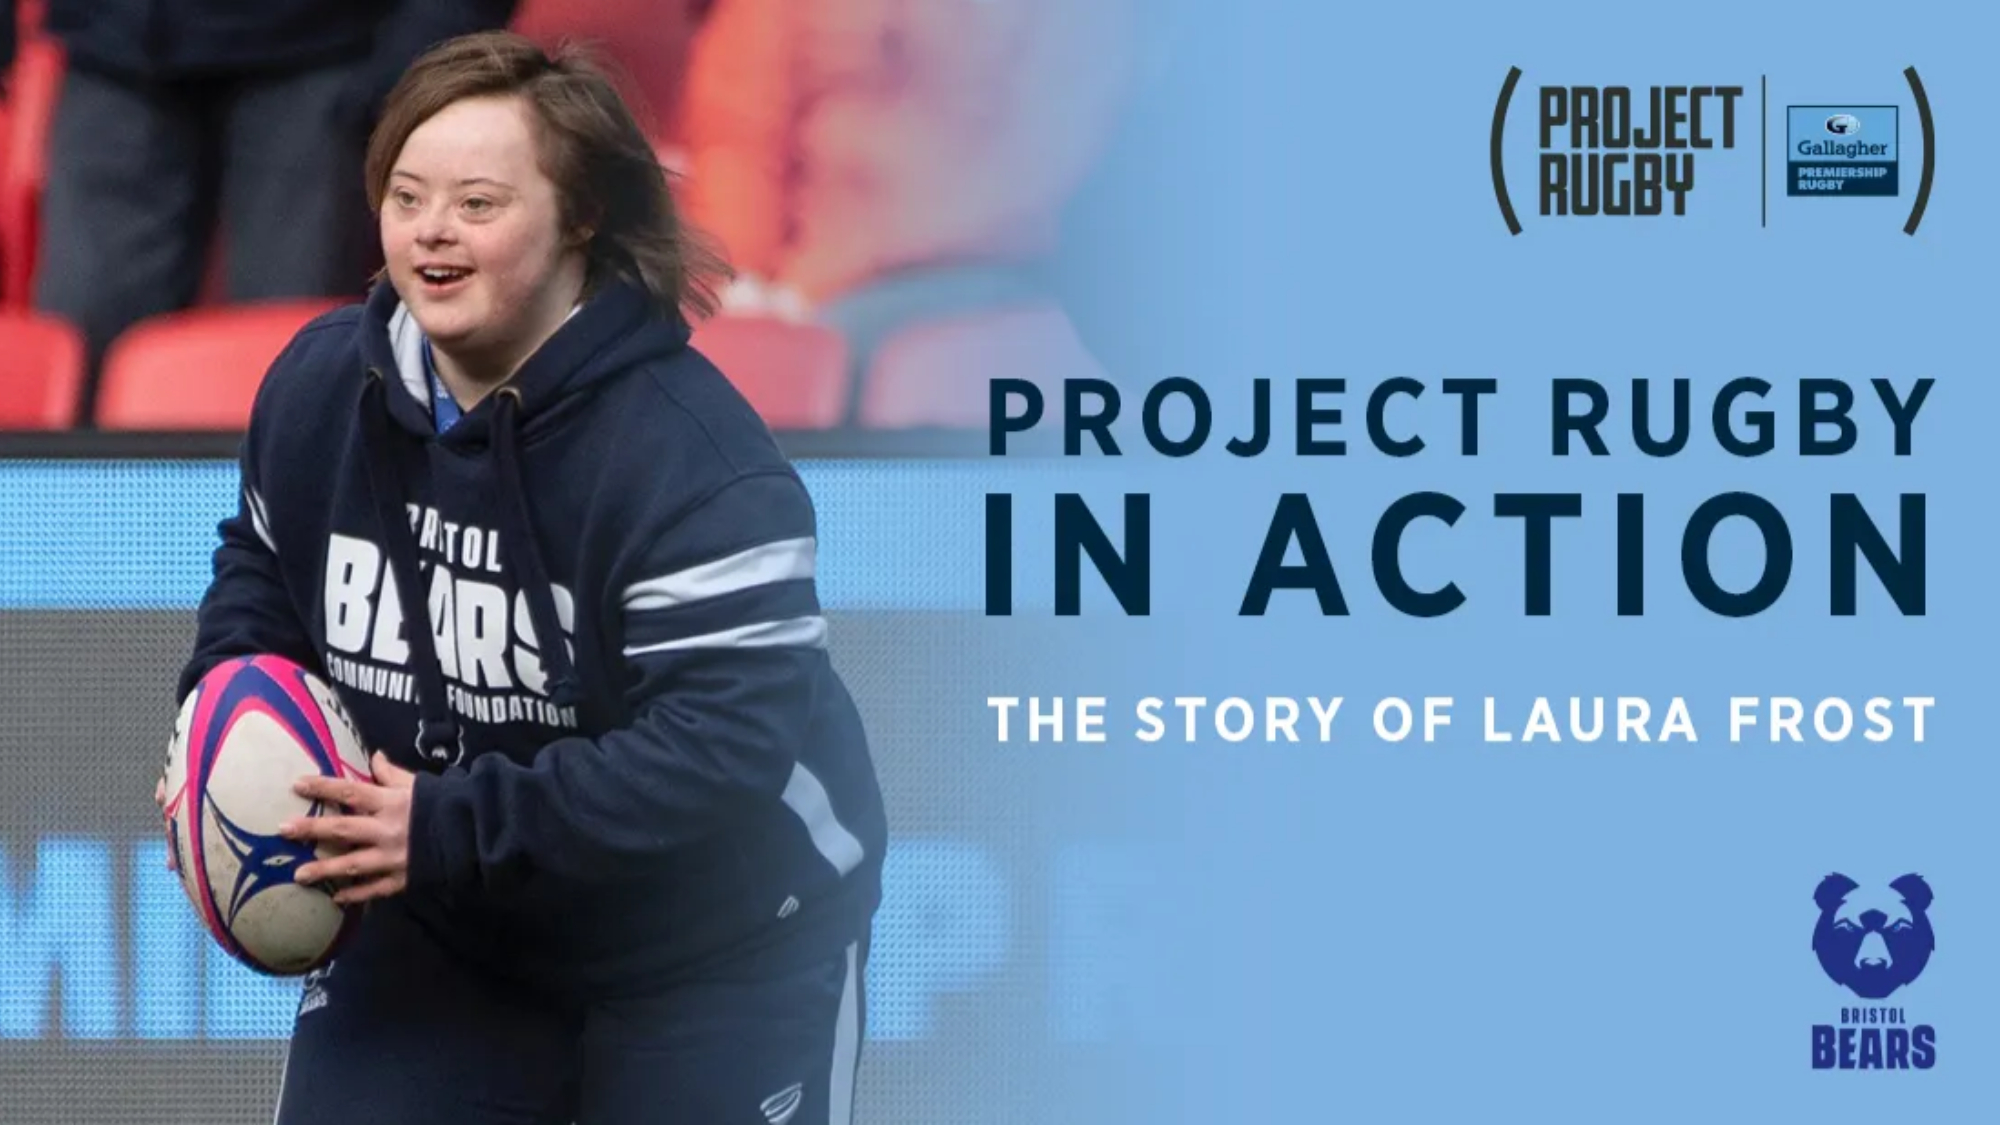 Project Rugby hasn't just changed my life – as a player, coach and volunteer it's helping me inspire the next generation with Bristol Bears